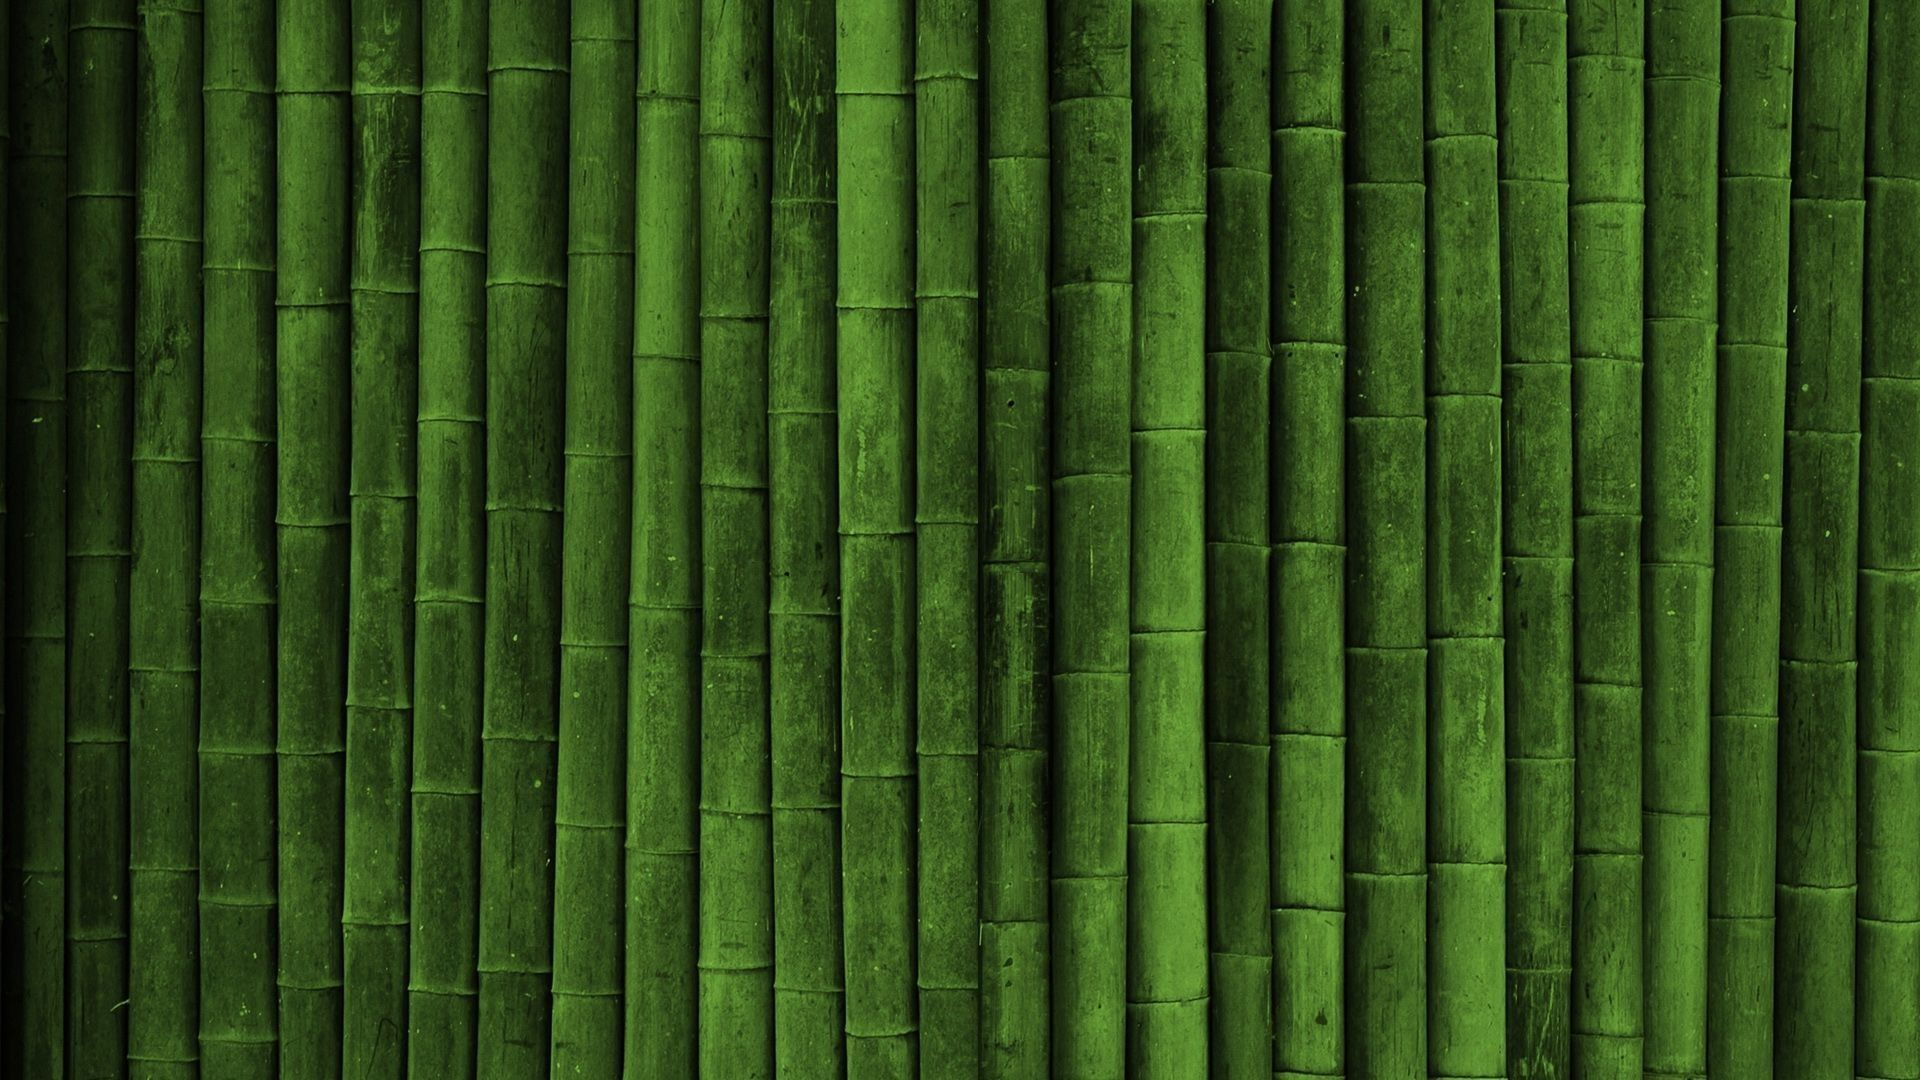 Bamboo wallpaper 8